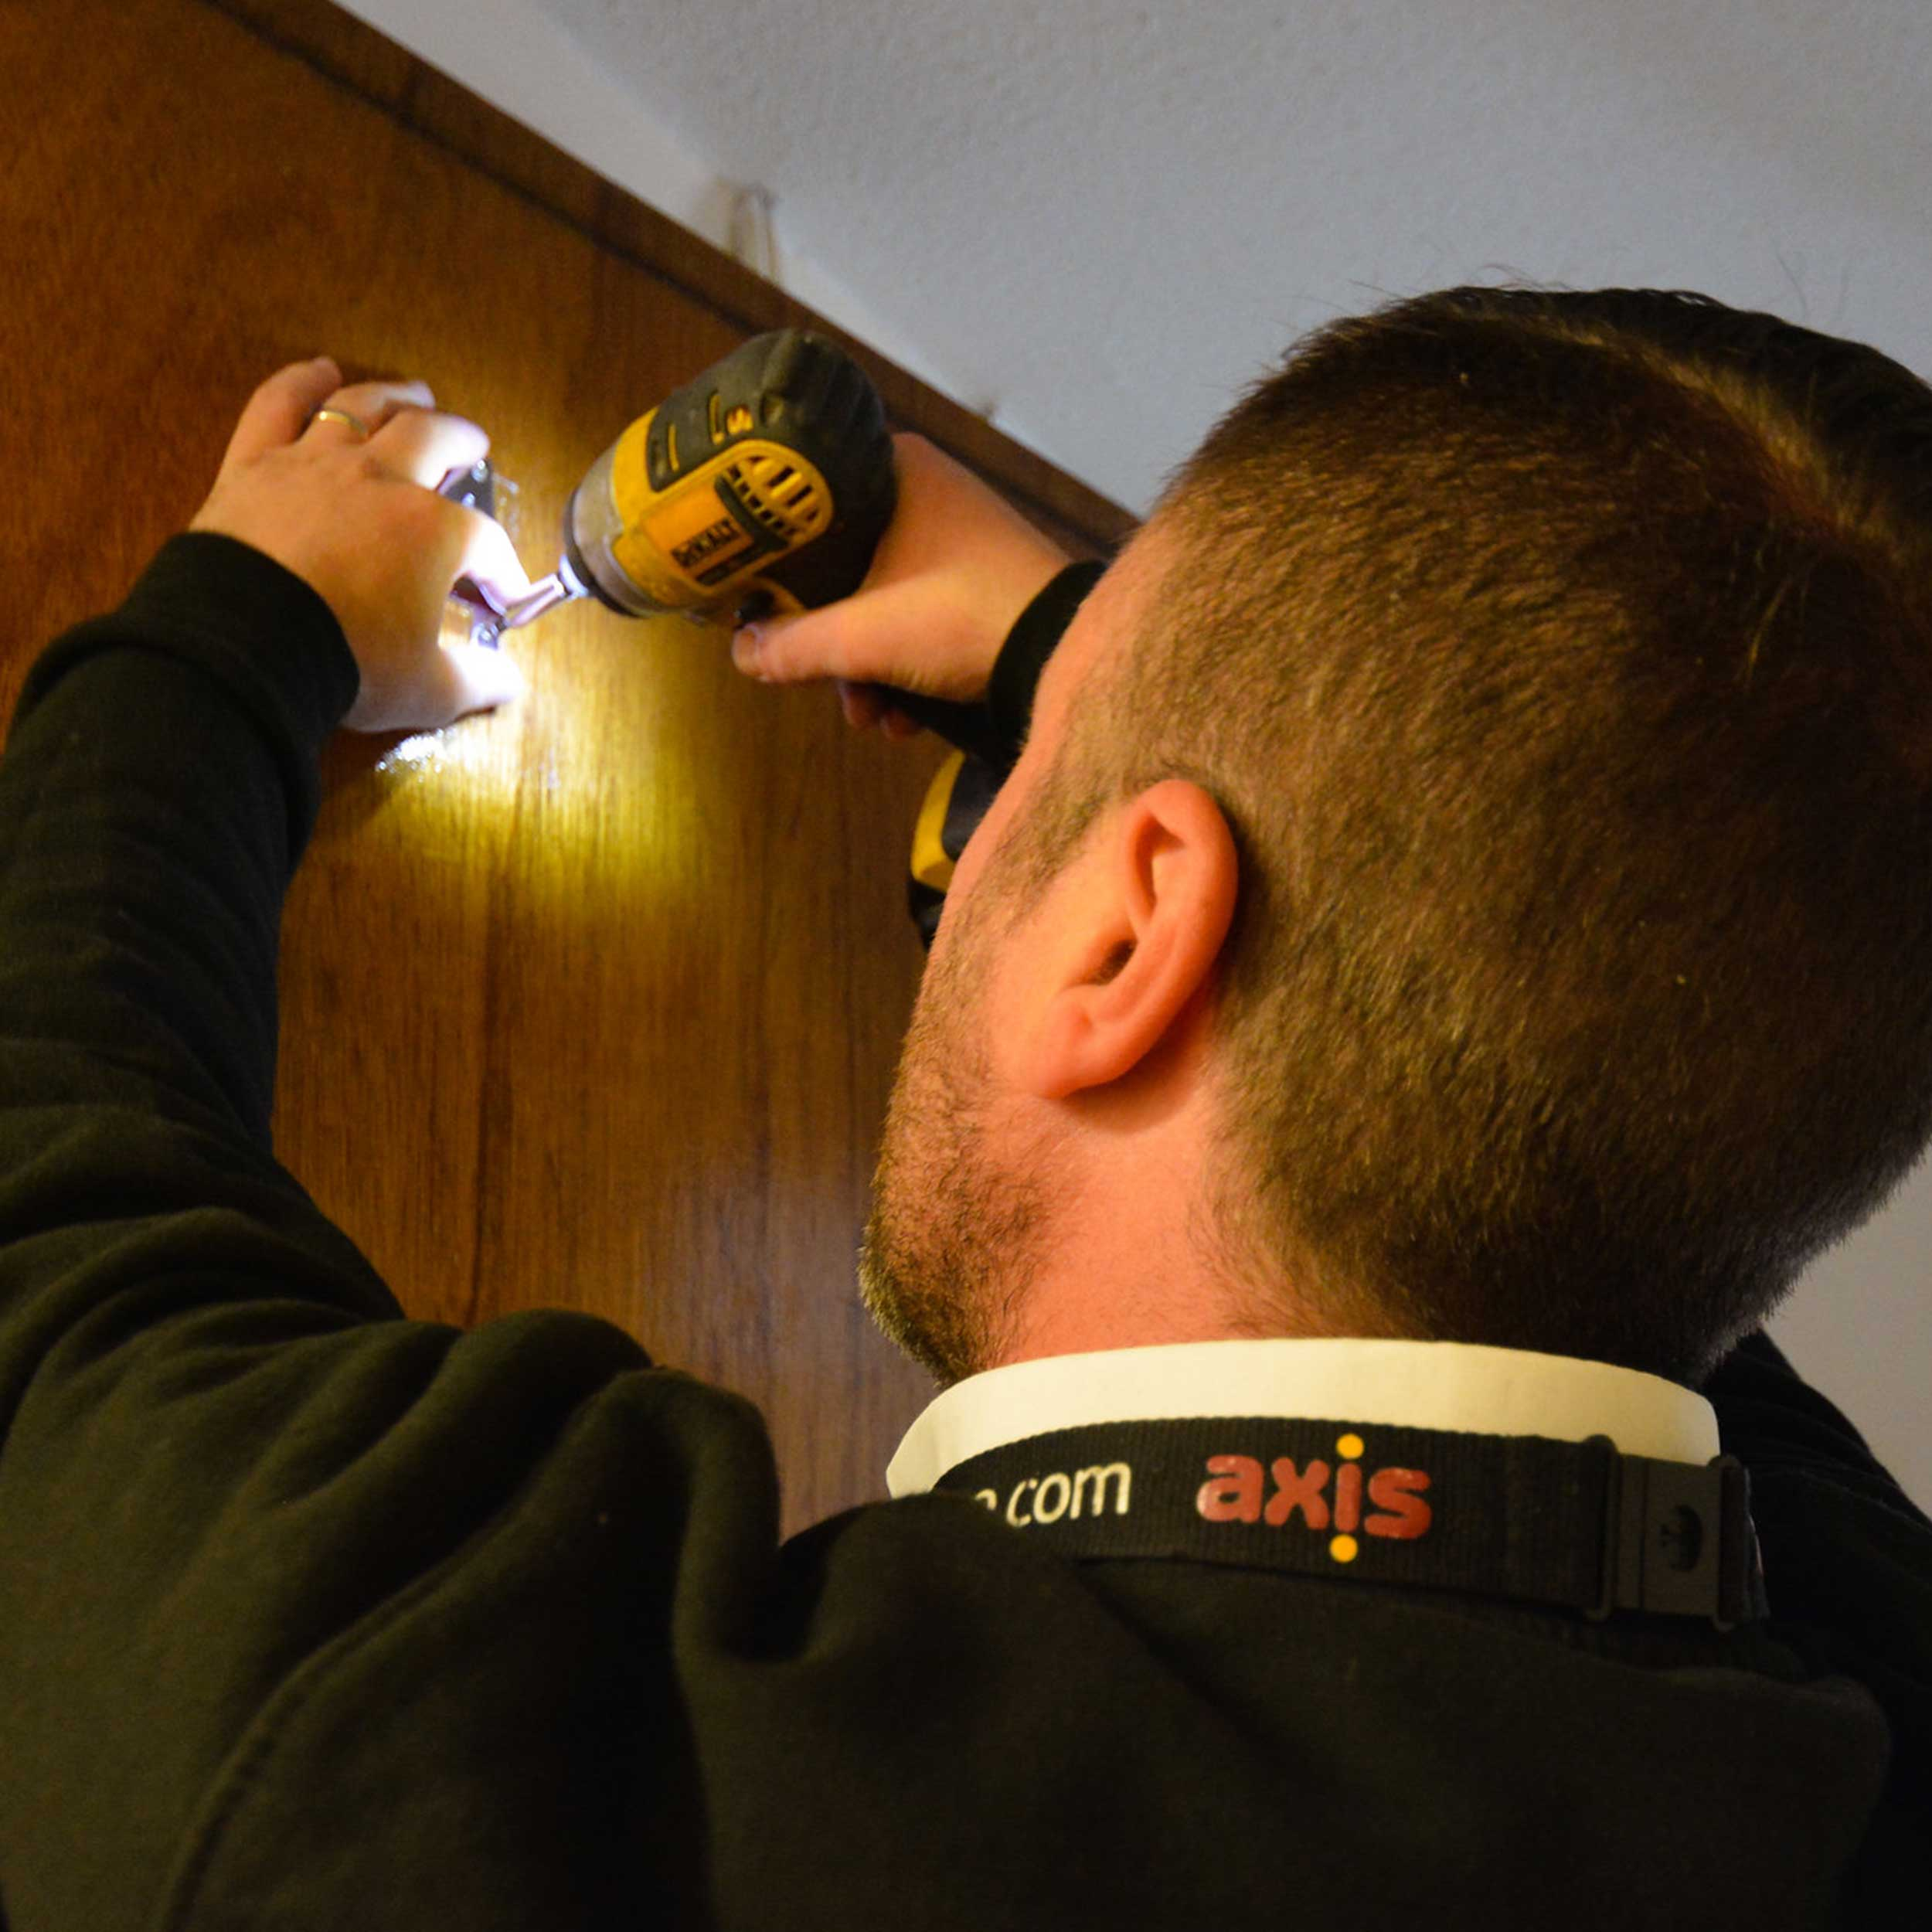 Axis operative carrying out void repairs on a property